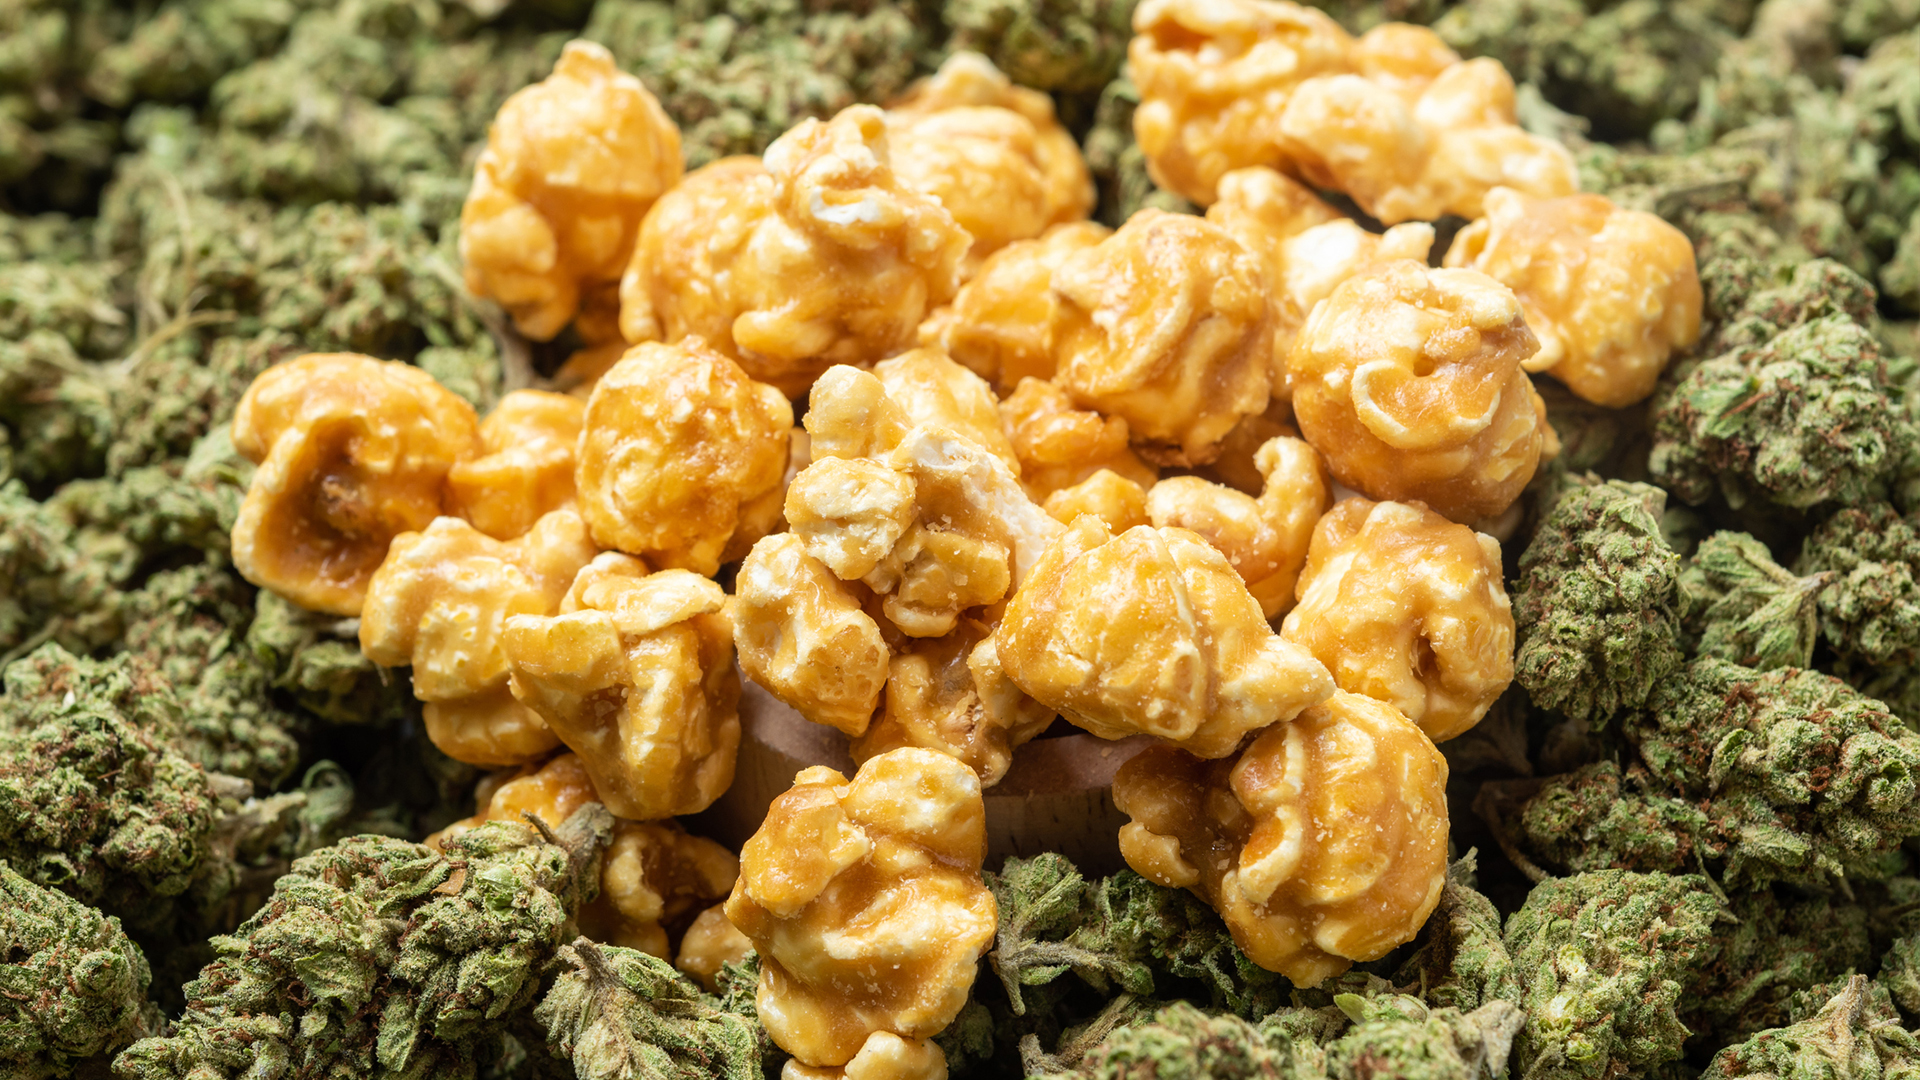 popcorn infused with thc